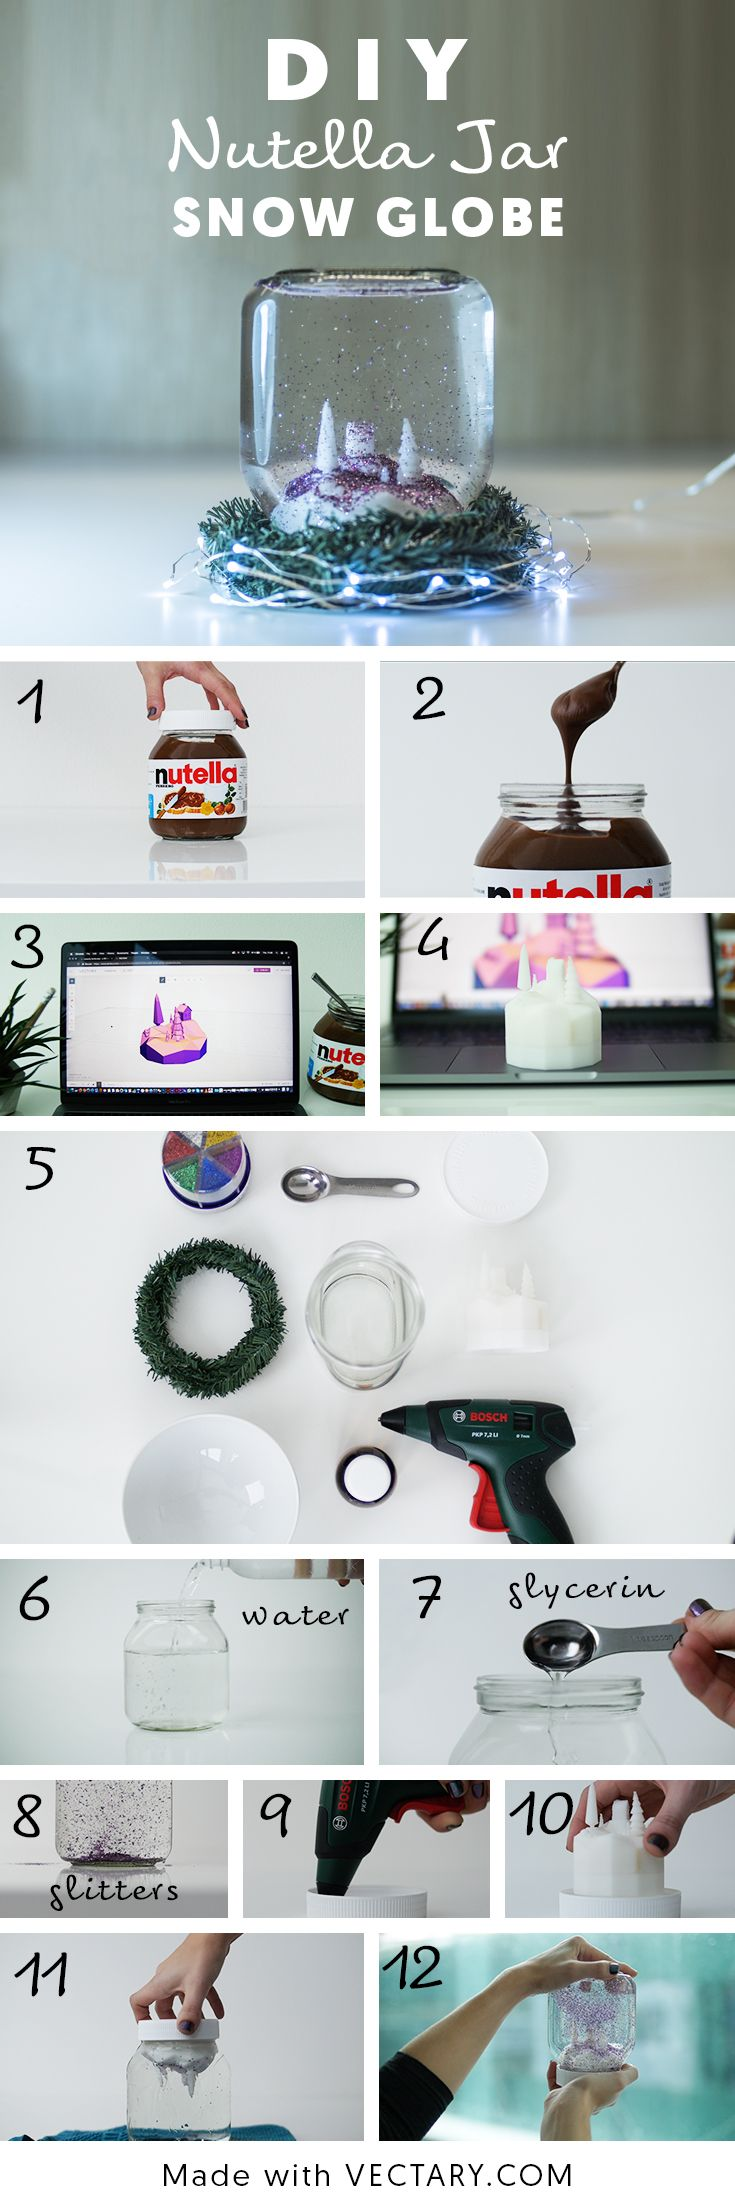 Make your own authentic snow globe with VECTARY and Nutella jar.  Design a landscape or whatever you like and fit it into a jar for the coolest Christmas snow globe ever.   #diy #christmas #christmasdecor #snowglobe #masonjar #nutella #christmastime #homedecor #homedecorideas #3Dprint